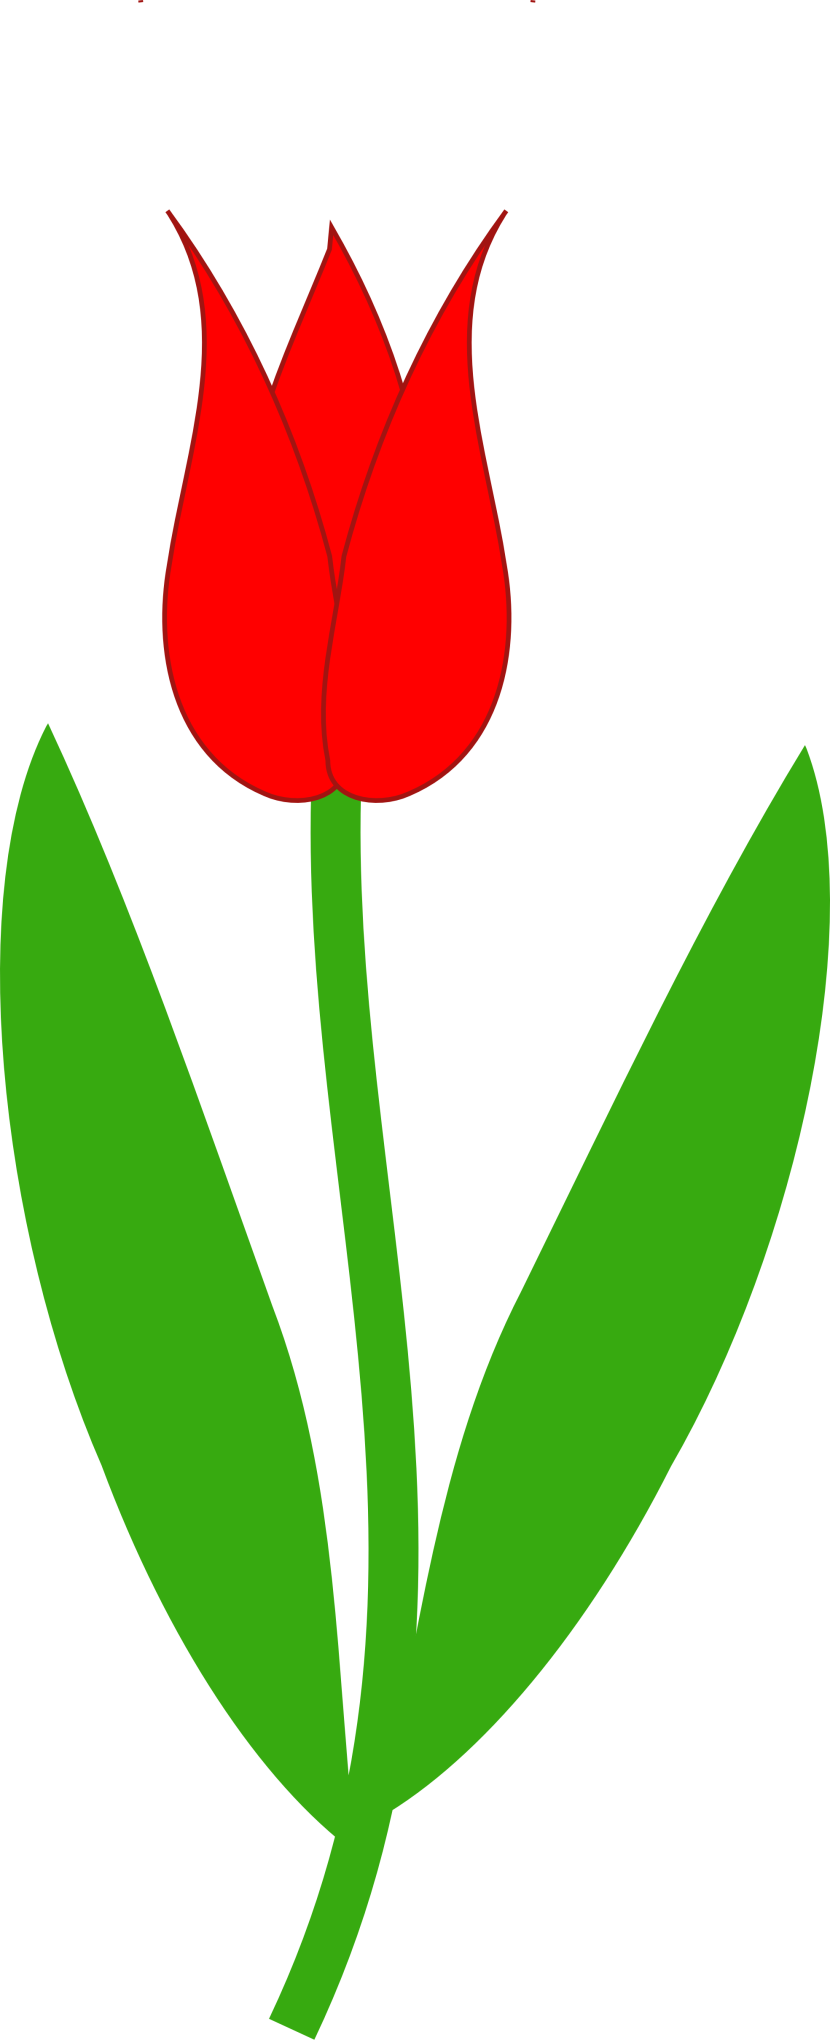 Tulip clipart #7, Download drawings